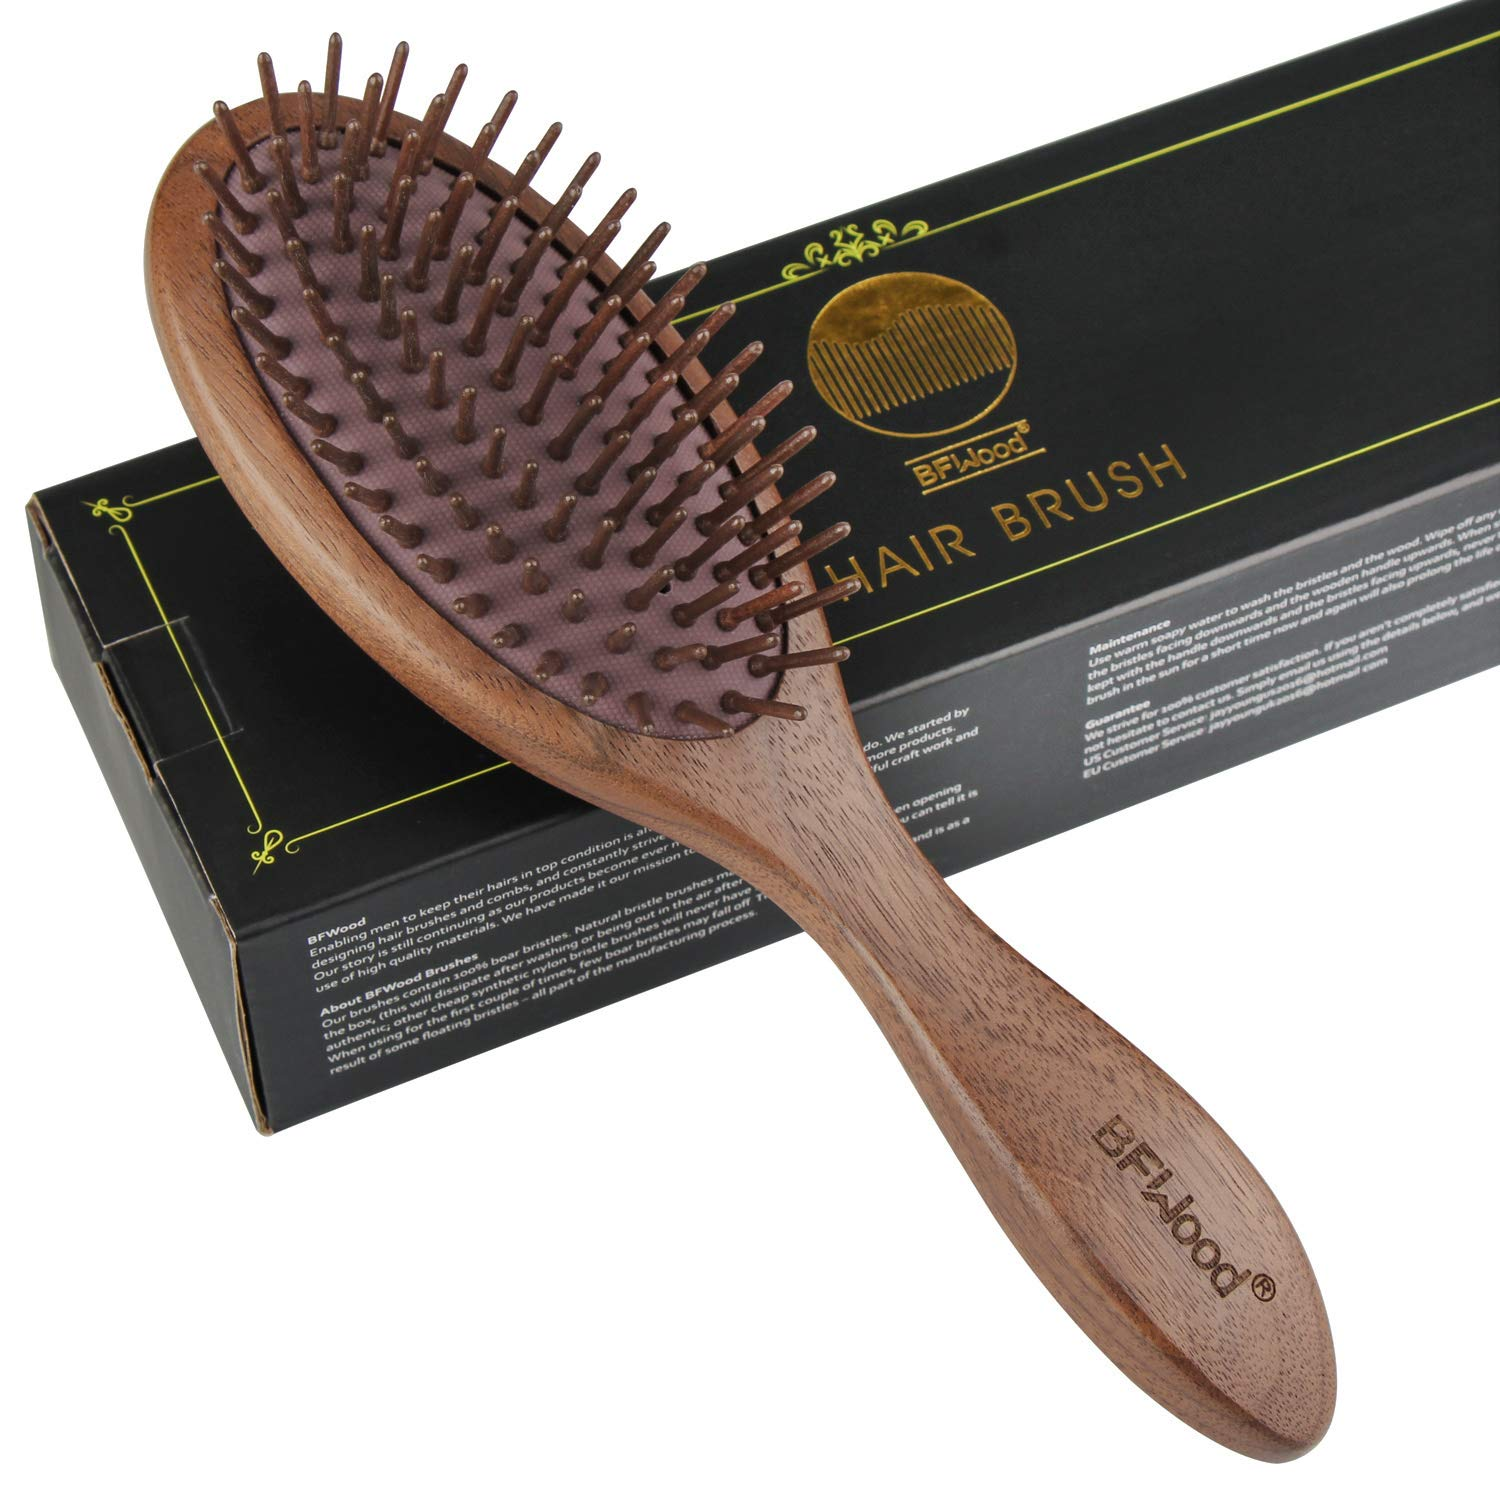 Best wooden bristle hair brush – Black Walnut Hairbrush for Massaging Scalp